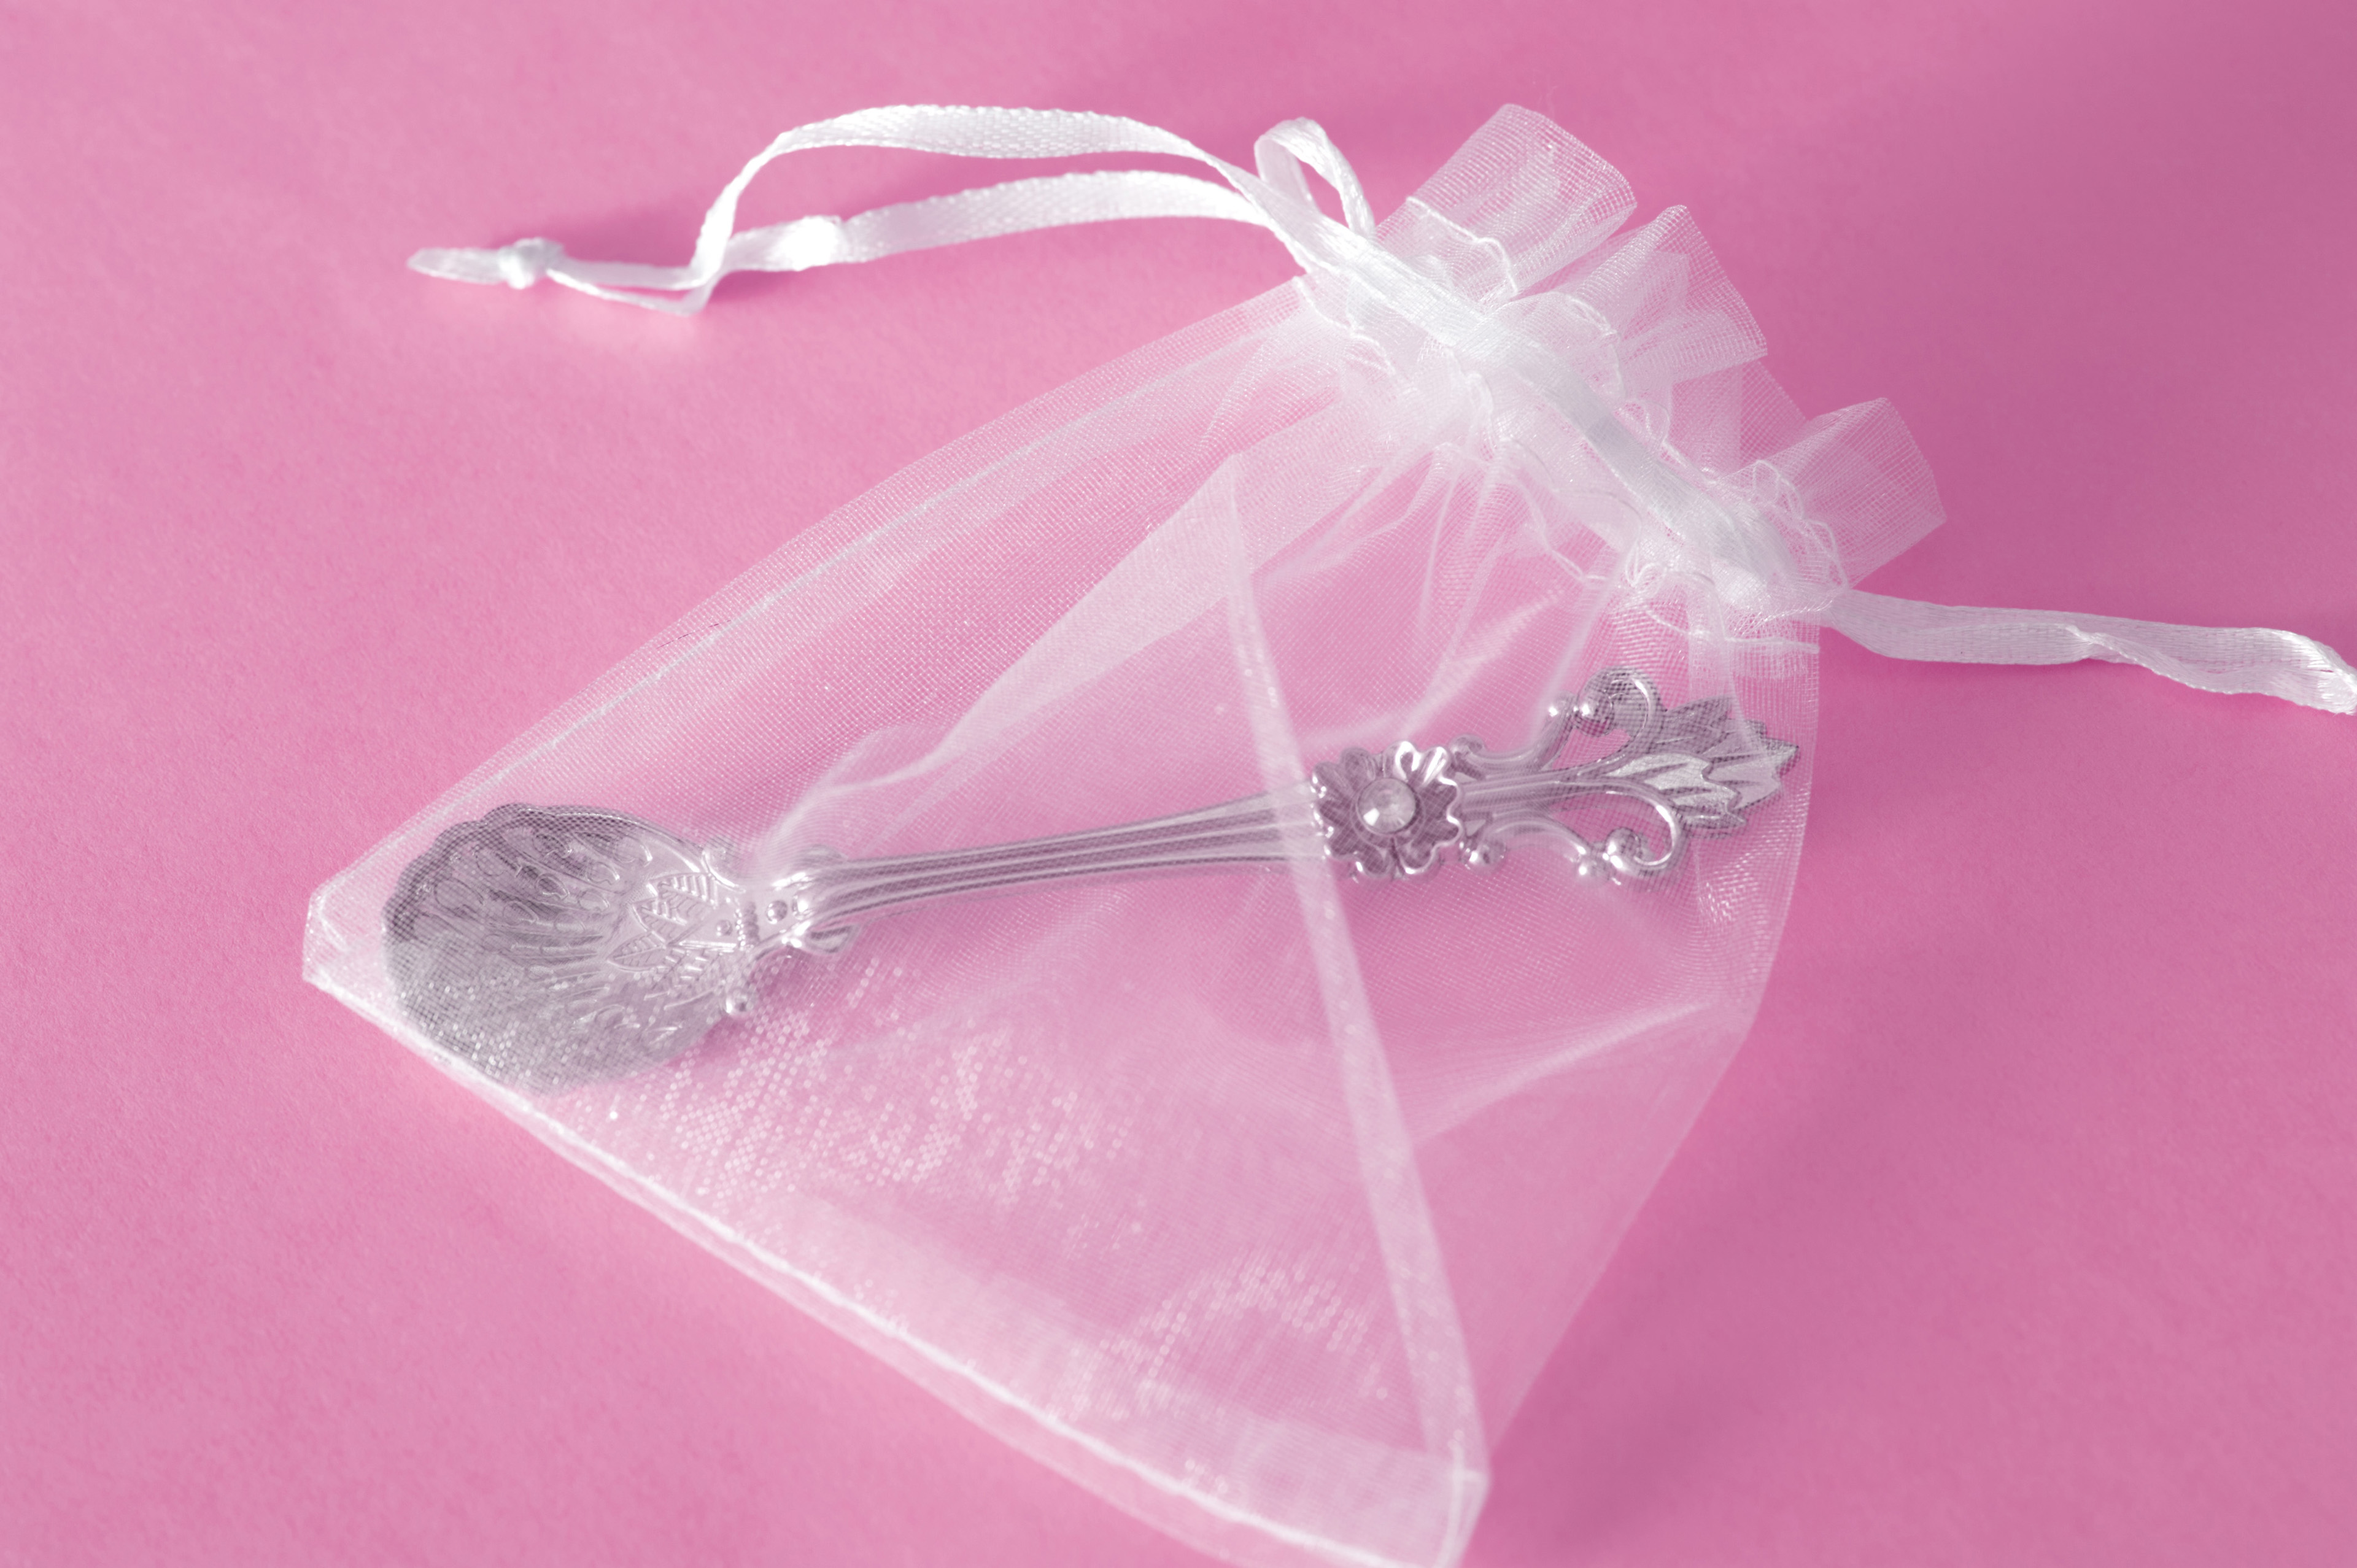 Christening Giveaway Concept - Close up Small Silver Spoon in a See Through Bag. Isolated on Pink Background.